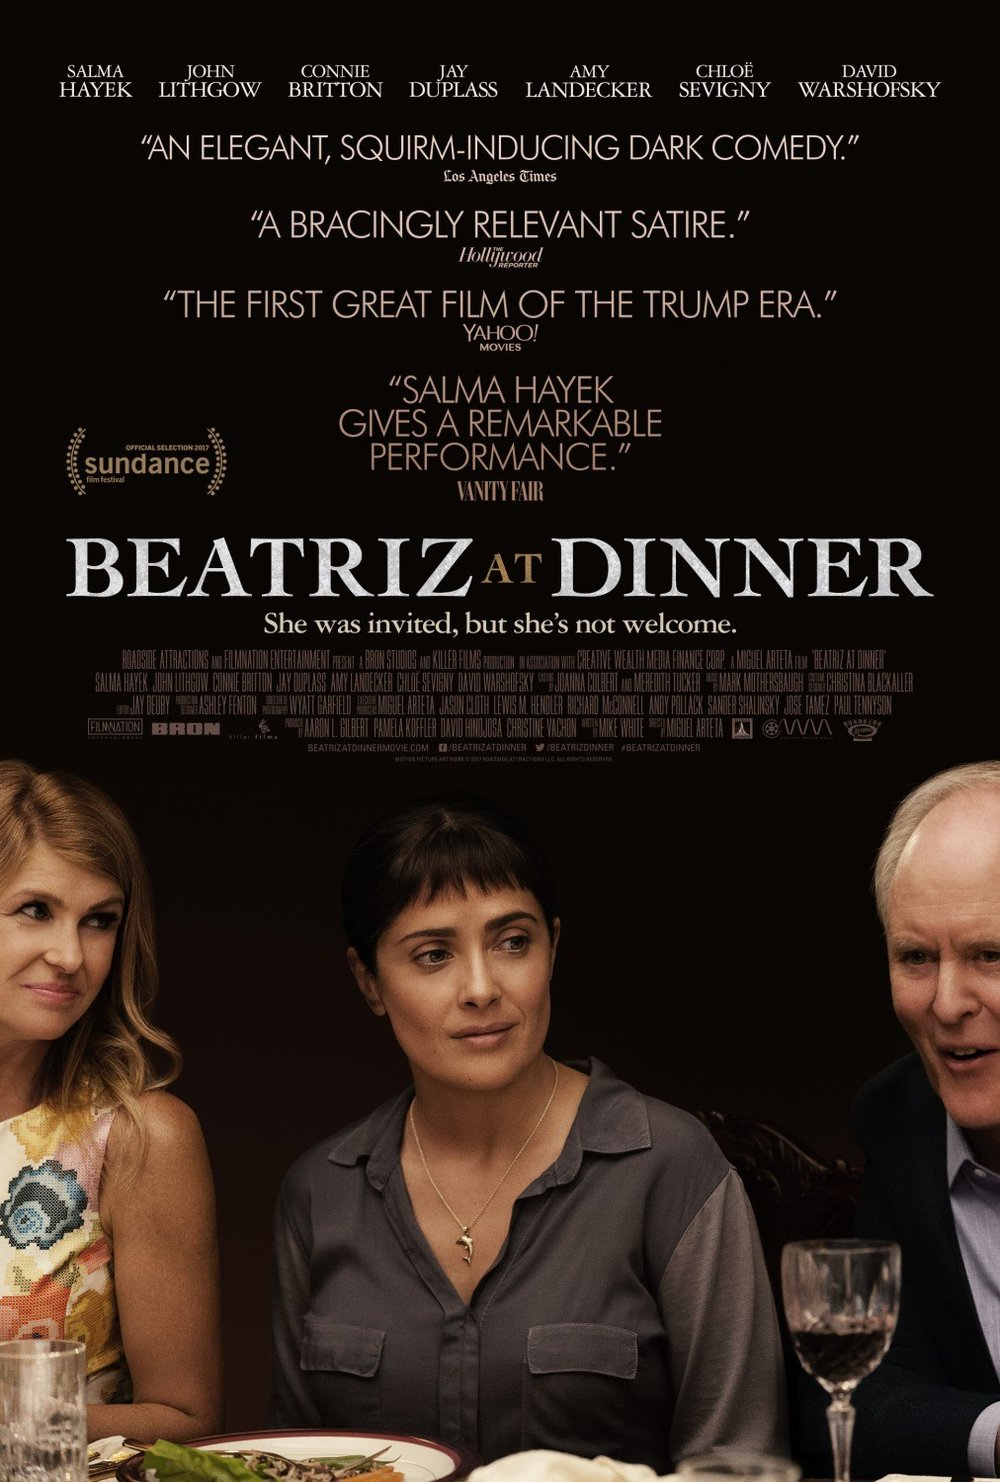 Beatriz-at-Dinner-movie-poster.jpg